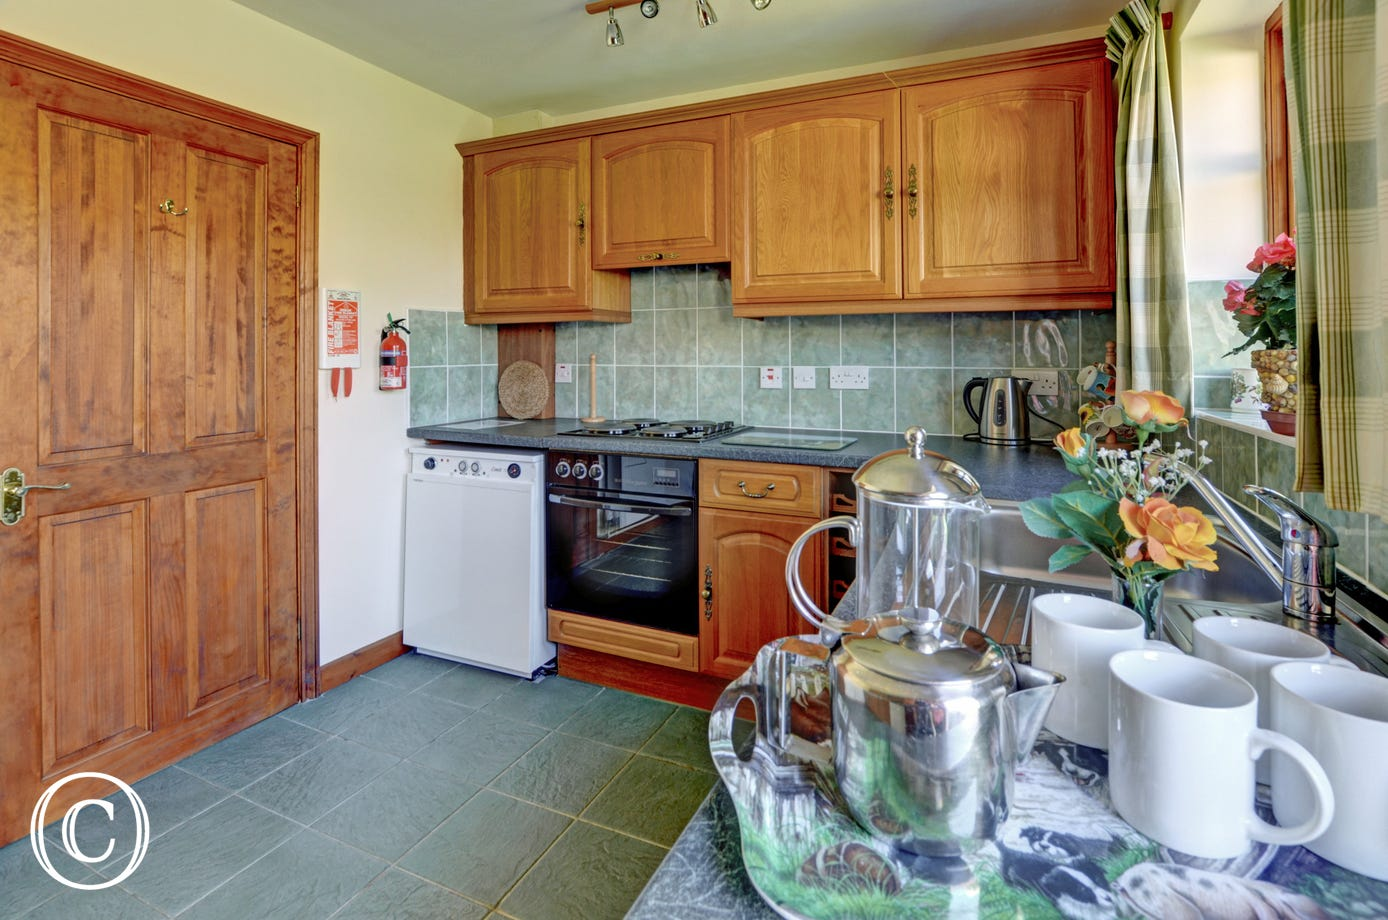 The modern fitted kitchen is well equipped